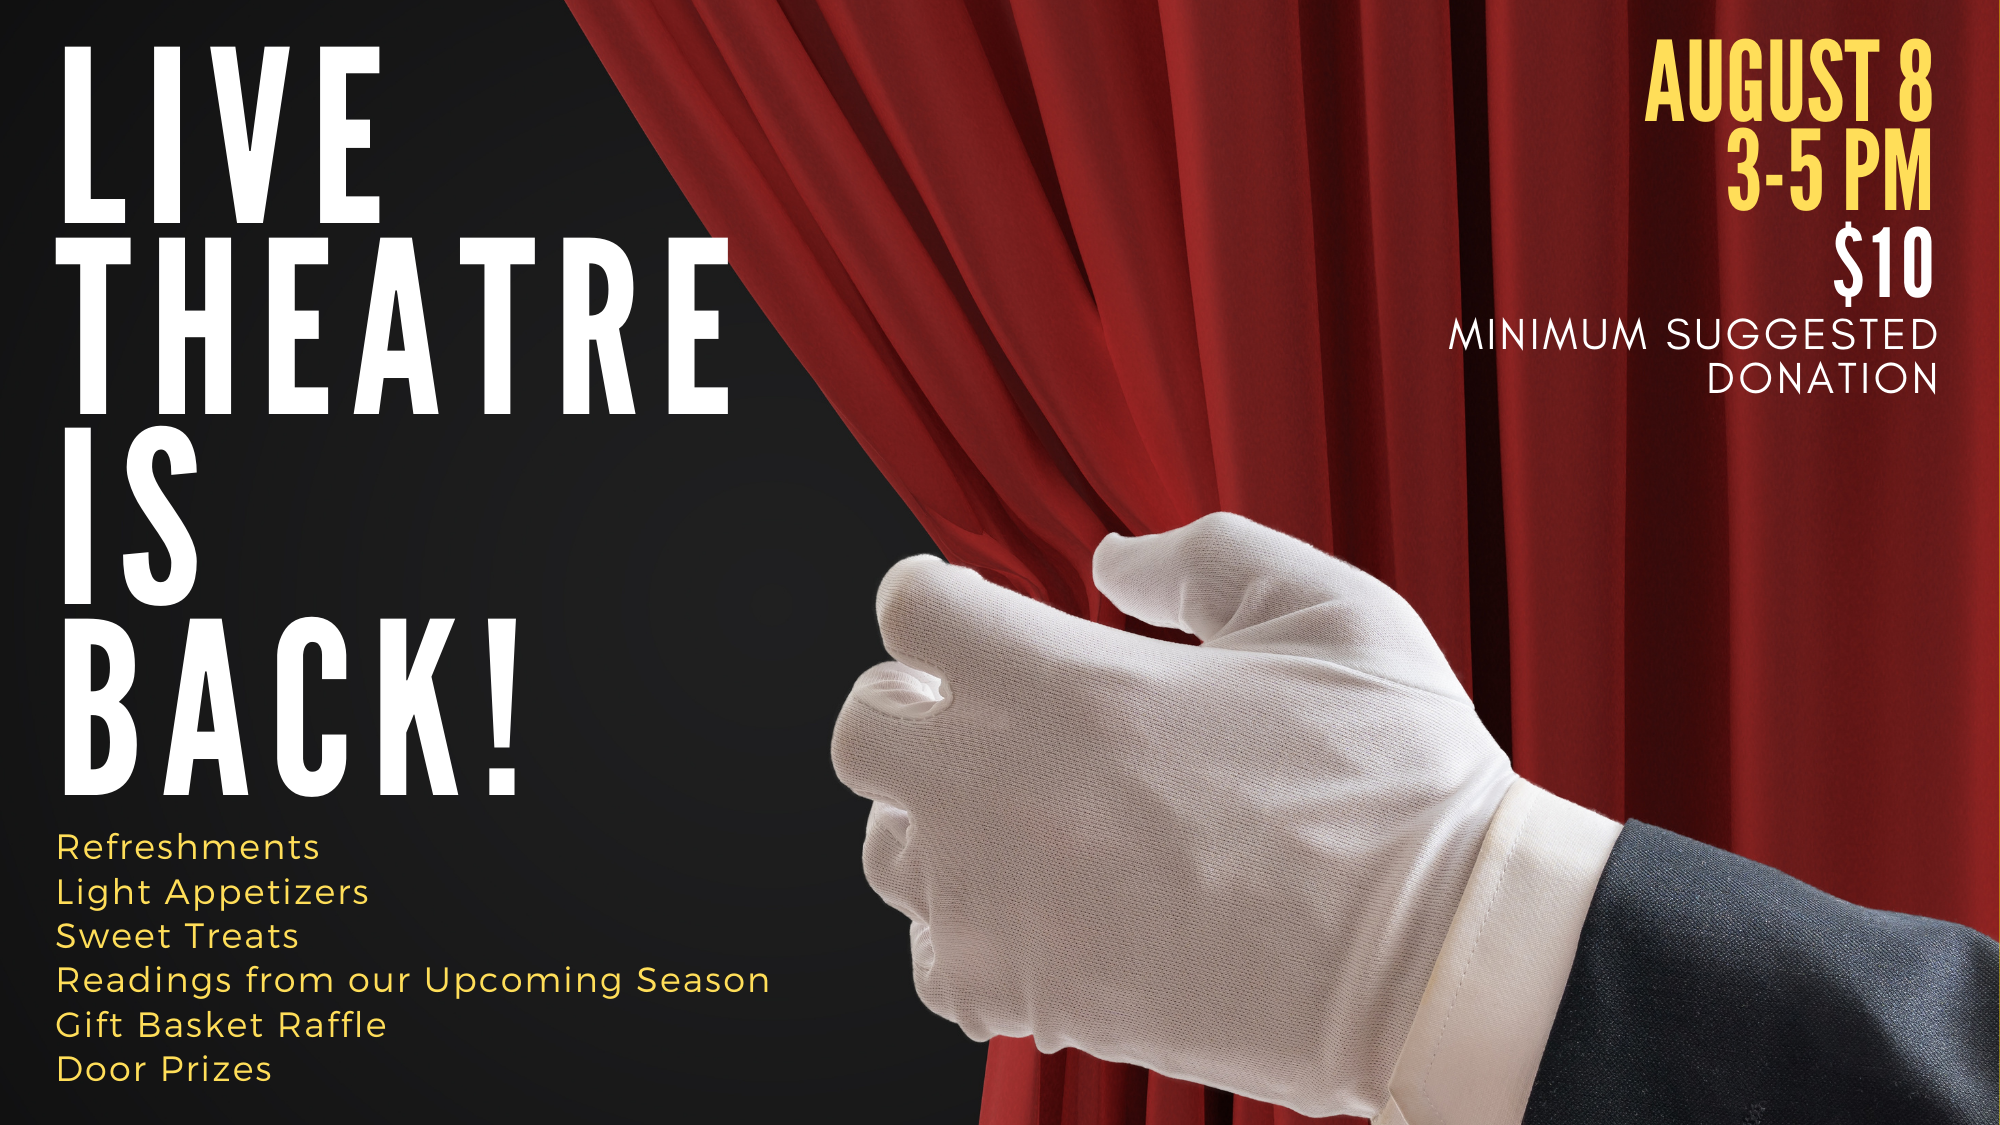 Live Theatre Is Back Fundraiser